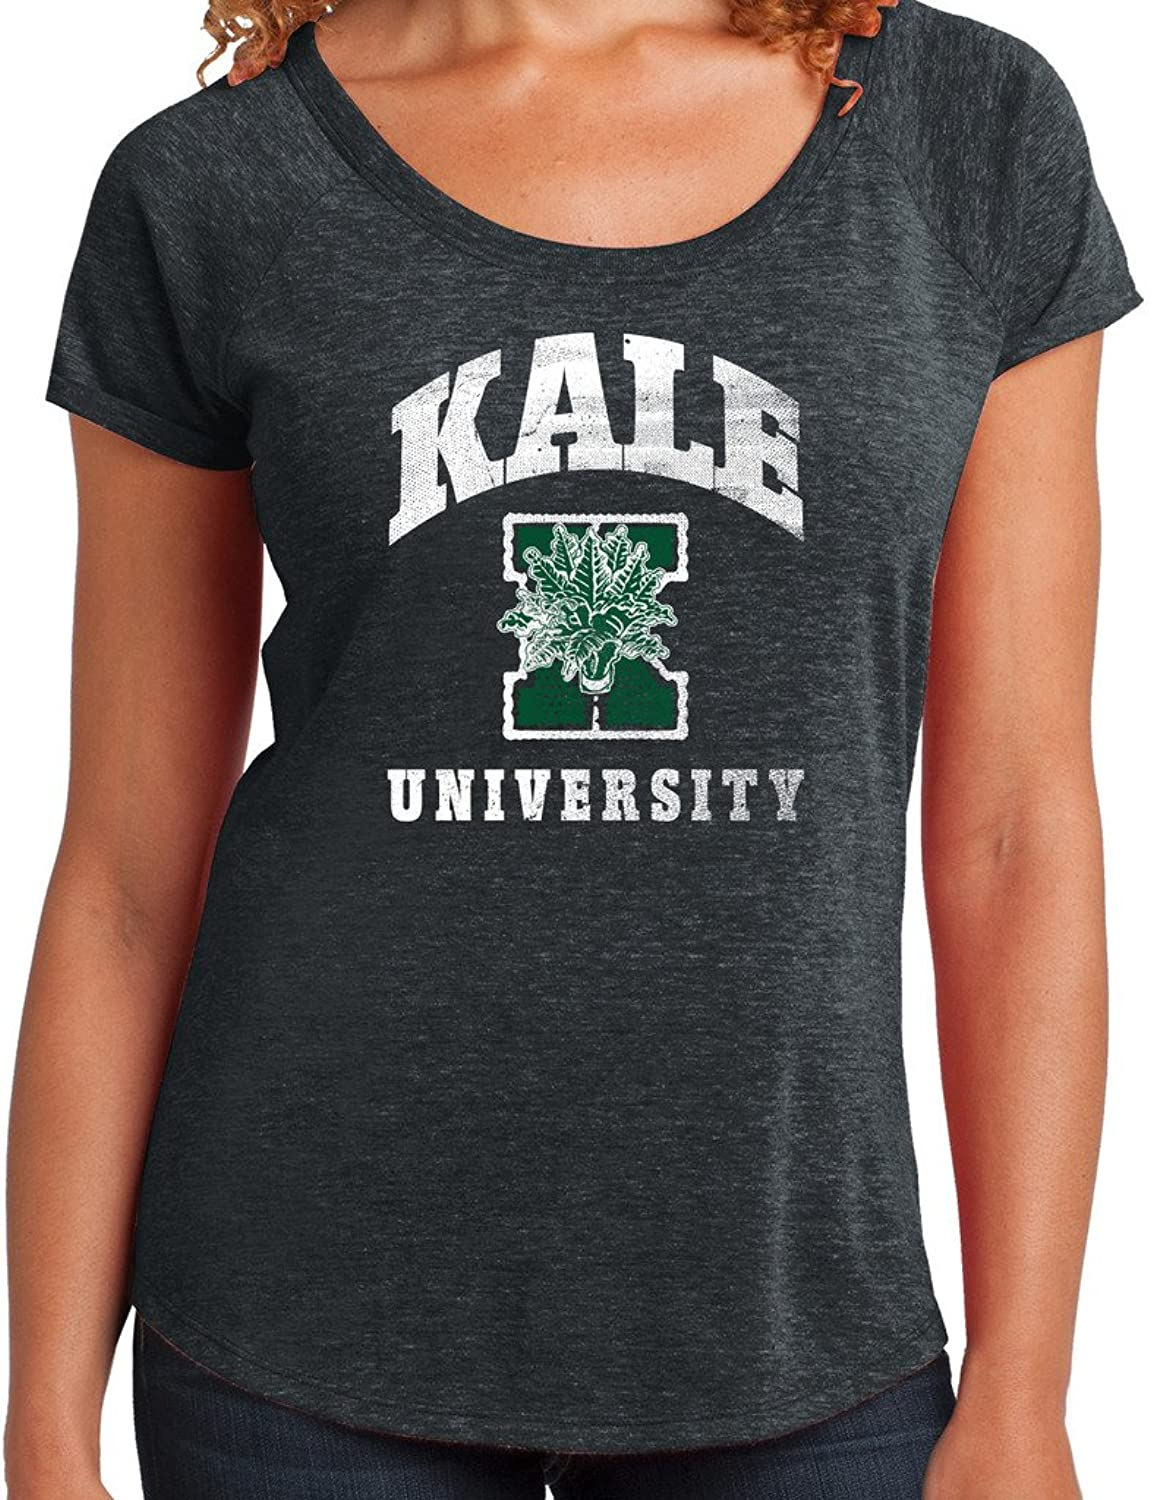 "Yoga Clothing For You Ladies ""Kale University"" Scoop Tee"